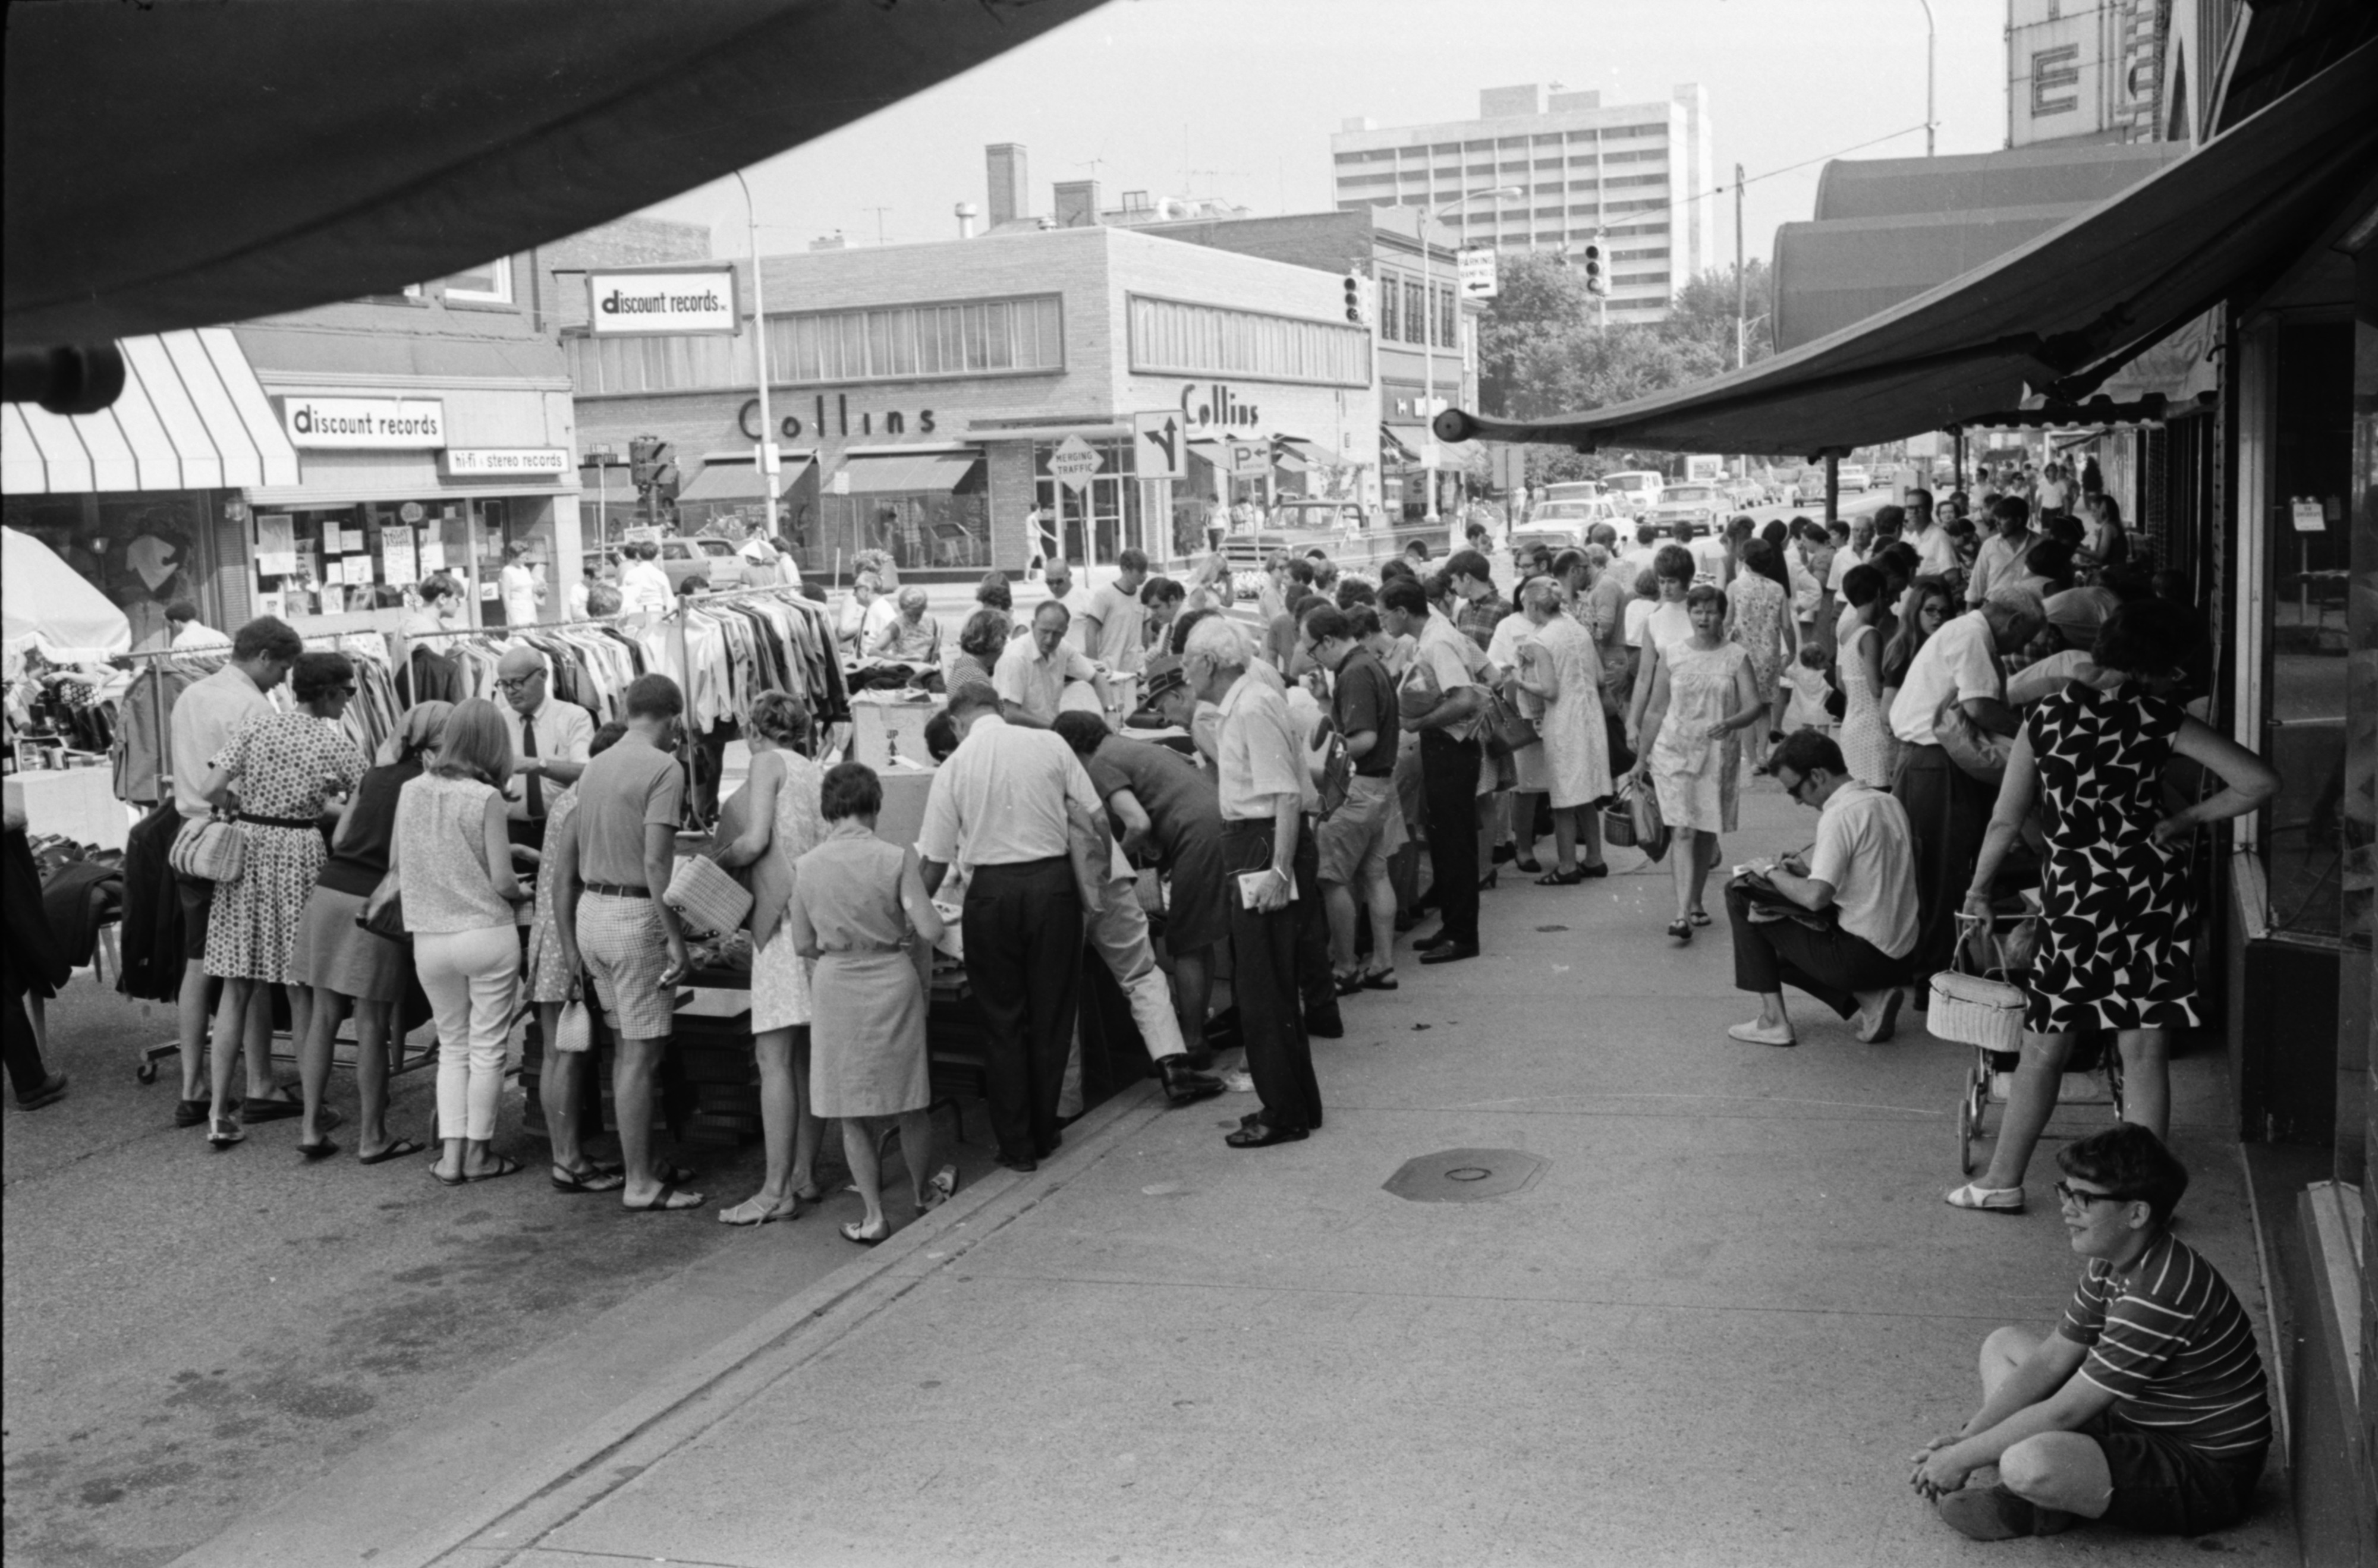 Street Photography At Art Fair On >> Street Scenes At Art Fair July 1969 Ann Arbor District Library